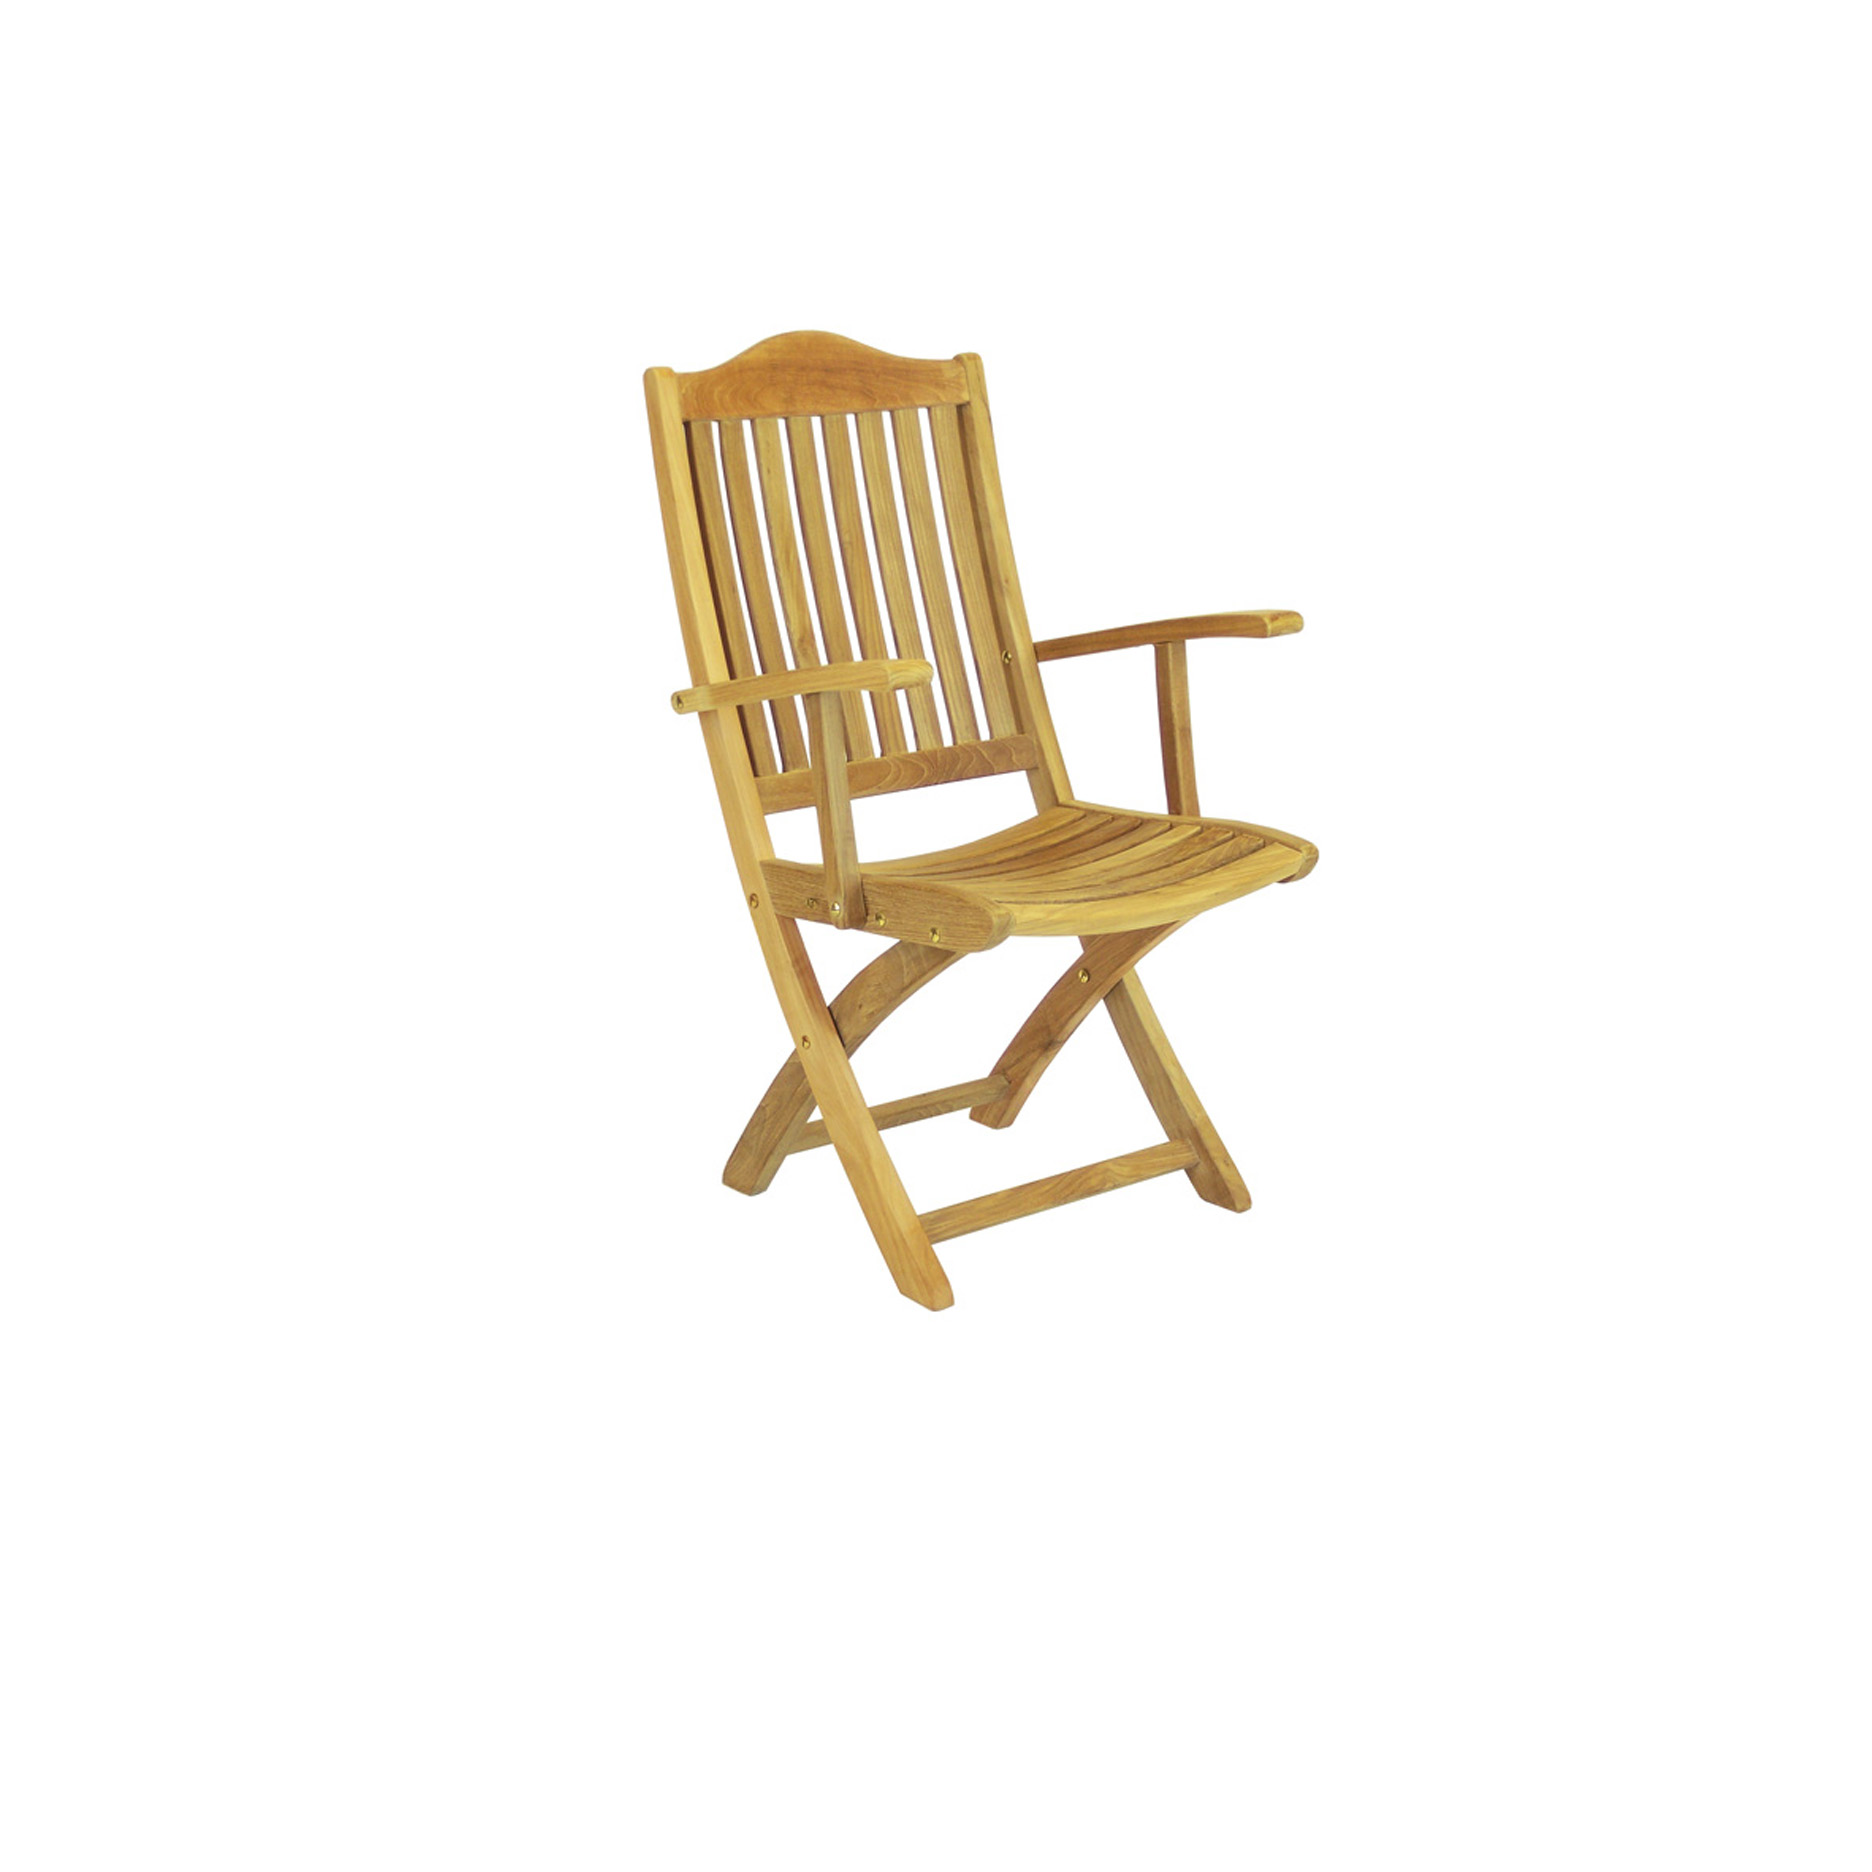 quality folding chairs how much is blue chair bay rum teak arm matador asia concept high